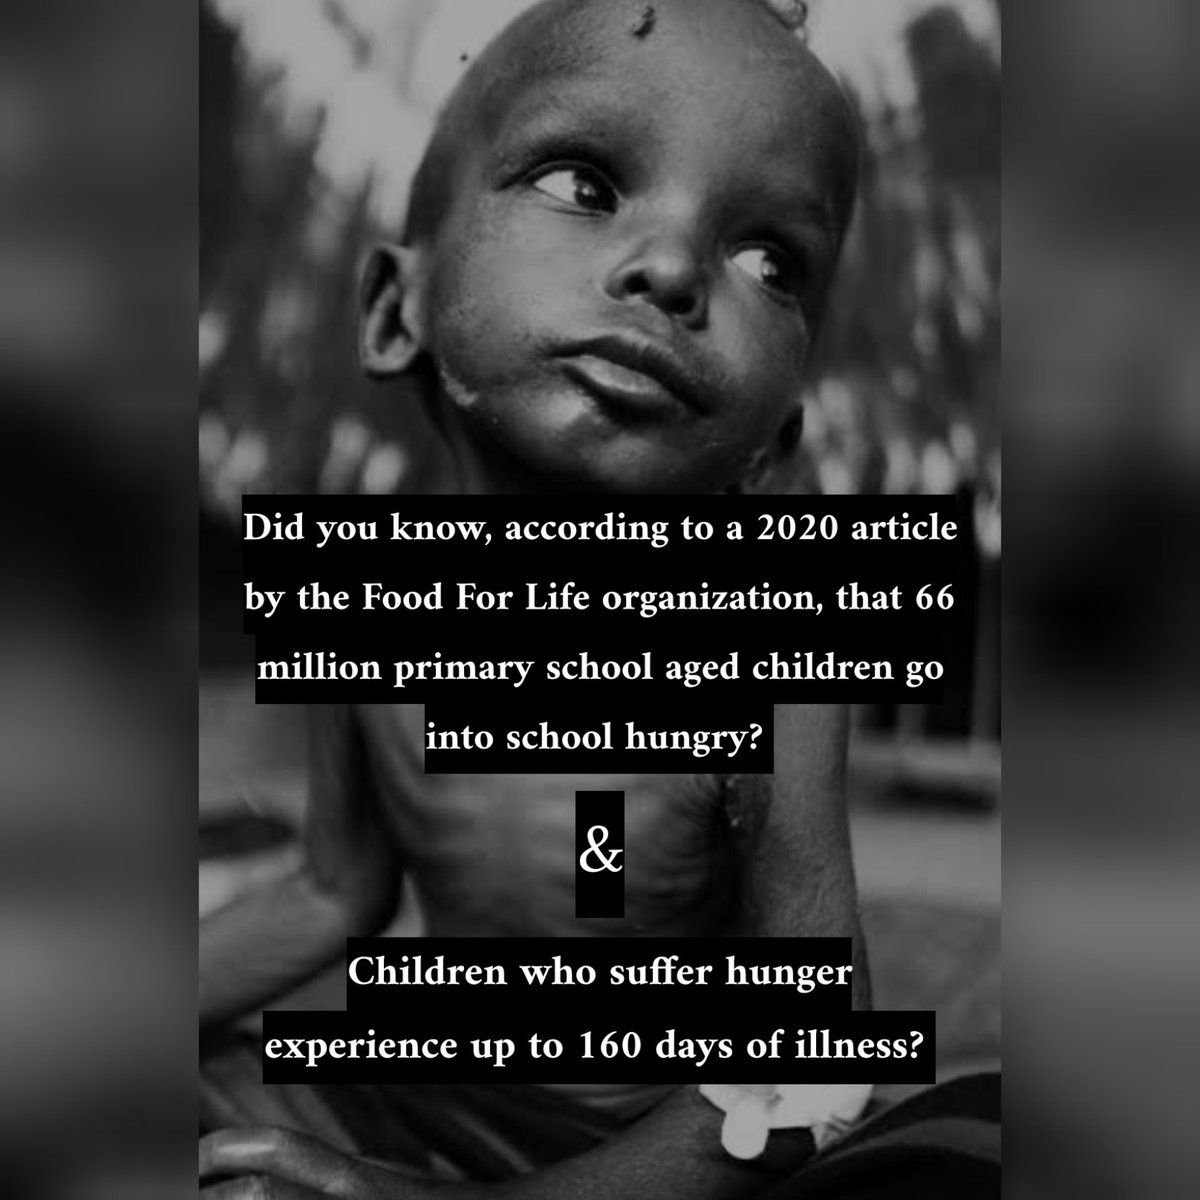 VITAMEAL A highly nutritious meal that is expertly designed to address the needs of malnourished children ° ° #worldhunger #starvingchildren #donationsneeded https://ffl.org/15280/children-hunger-statistics/…pic.twitter.com/NALg3Q7Yte